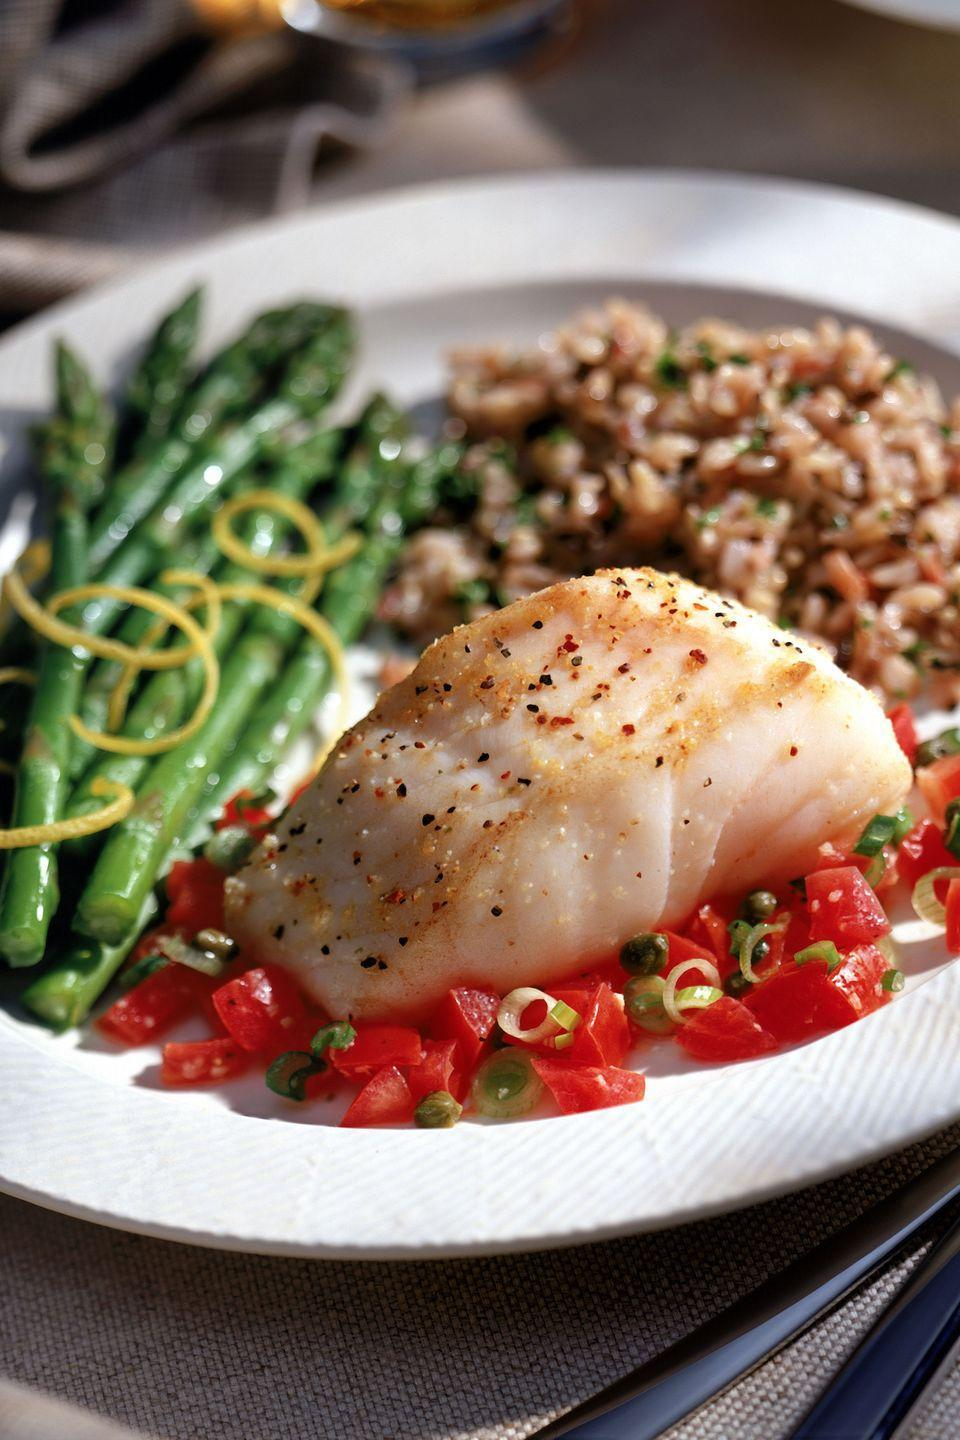 "<p>Serve 4 ounces broiled <a href=""https://www.goodhousekeeping.com/food-recipes/a42845/lemon-herb-baked-flounder-recipe/"" rel=""nofollow noopener"" target=""_blank"" data-ylk=""slk:flounder"" class=""link rapid-noclick-resp"">flounder</a> or sole with 2 sliced plum tomatoes sprinkled with 2 tablespoons grated Parmesan cheese, broiled until just golden. Eat with 1 cup cooked couscous and 1 cup steamed broccoli. Enjoy with a single-serve ice cream (like <a href=""https://www.goodhousekeeping.com/food-products/ice-cream-reviews/g22607515/healthy-ice-creams/"" rel=""nofollow noopener"" target=""_blank"" data-ylk=""slk:any of these delicious picks"" class=""link rapid-noclick-resp"">any of these delicious picks</a>!) for dessert. </p>"